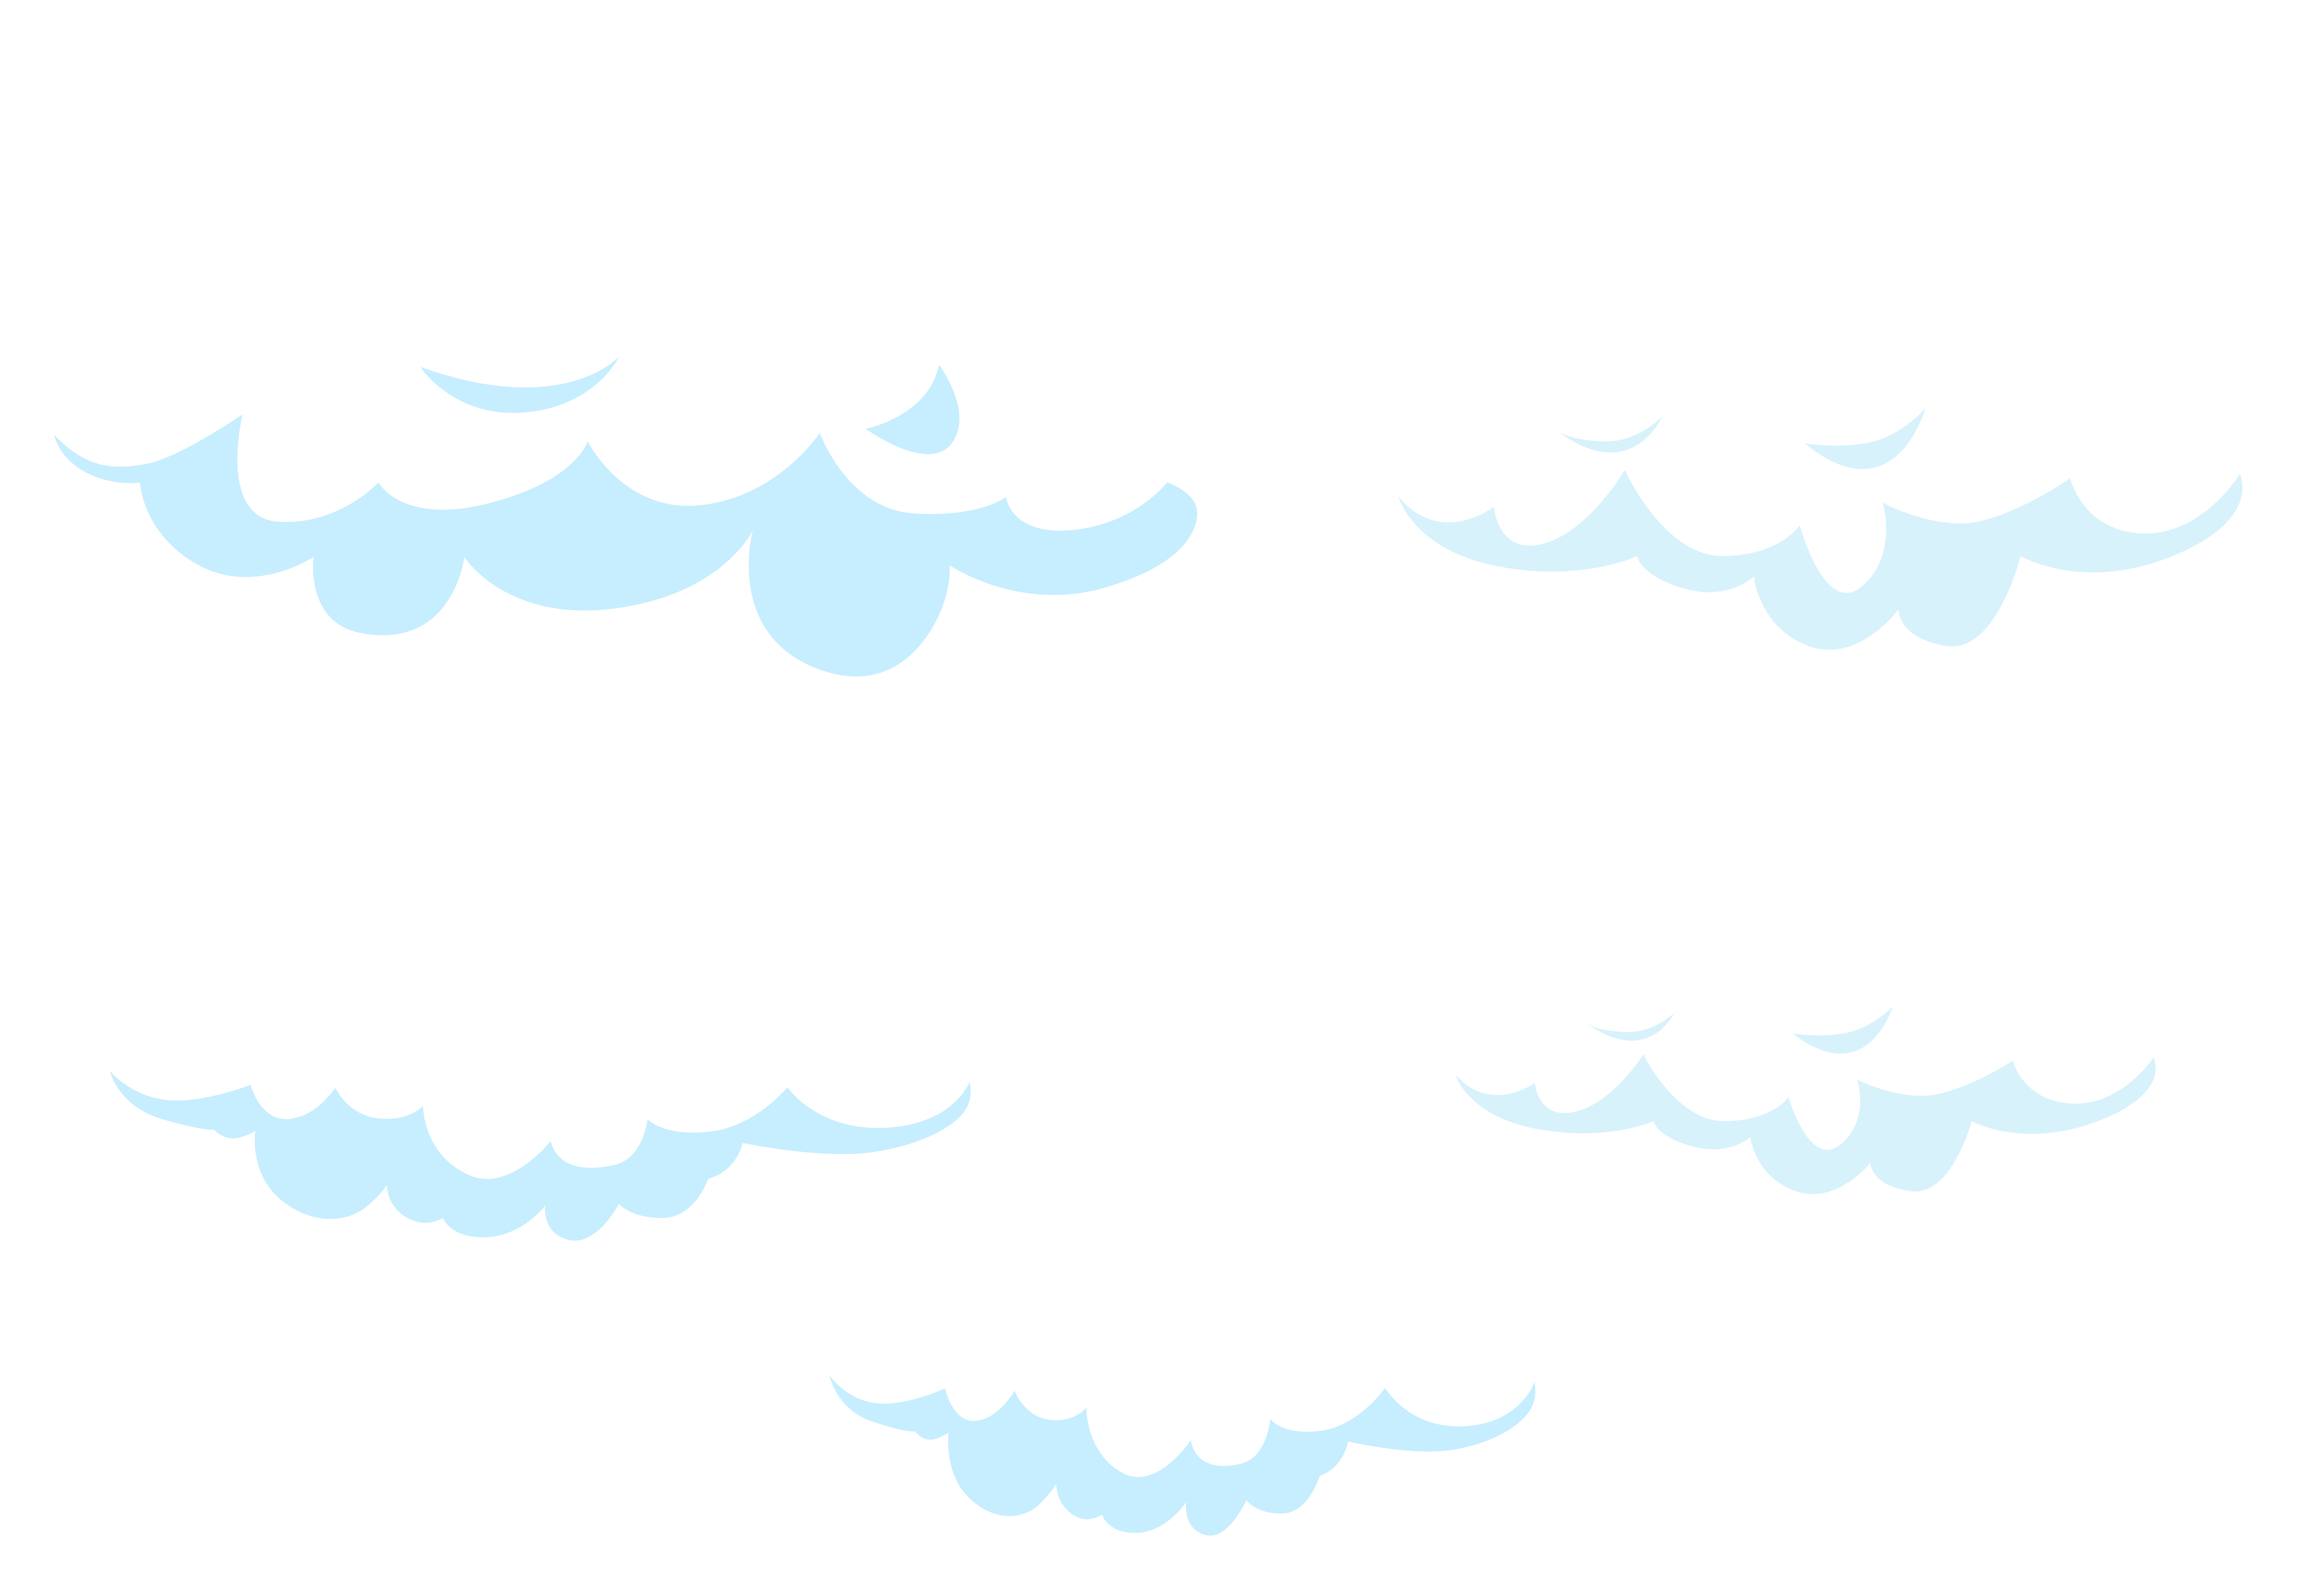 Cartoon Clouds Set Transparent Png Clip Art Image Gallery Yopriceville High Quality Images And Transparent Png Free Cartoon Clouds Free Clip Art Clip Art